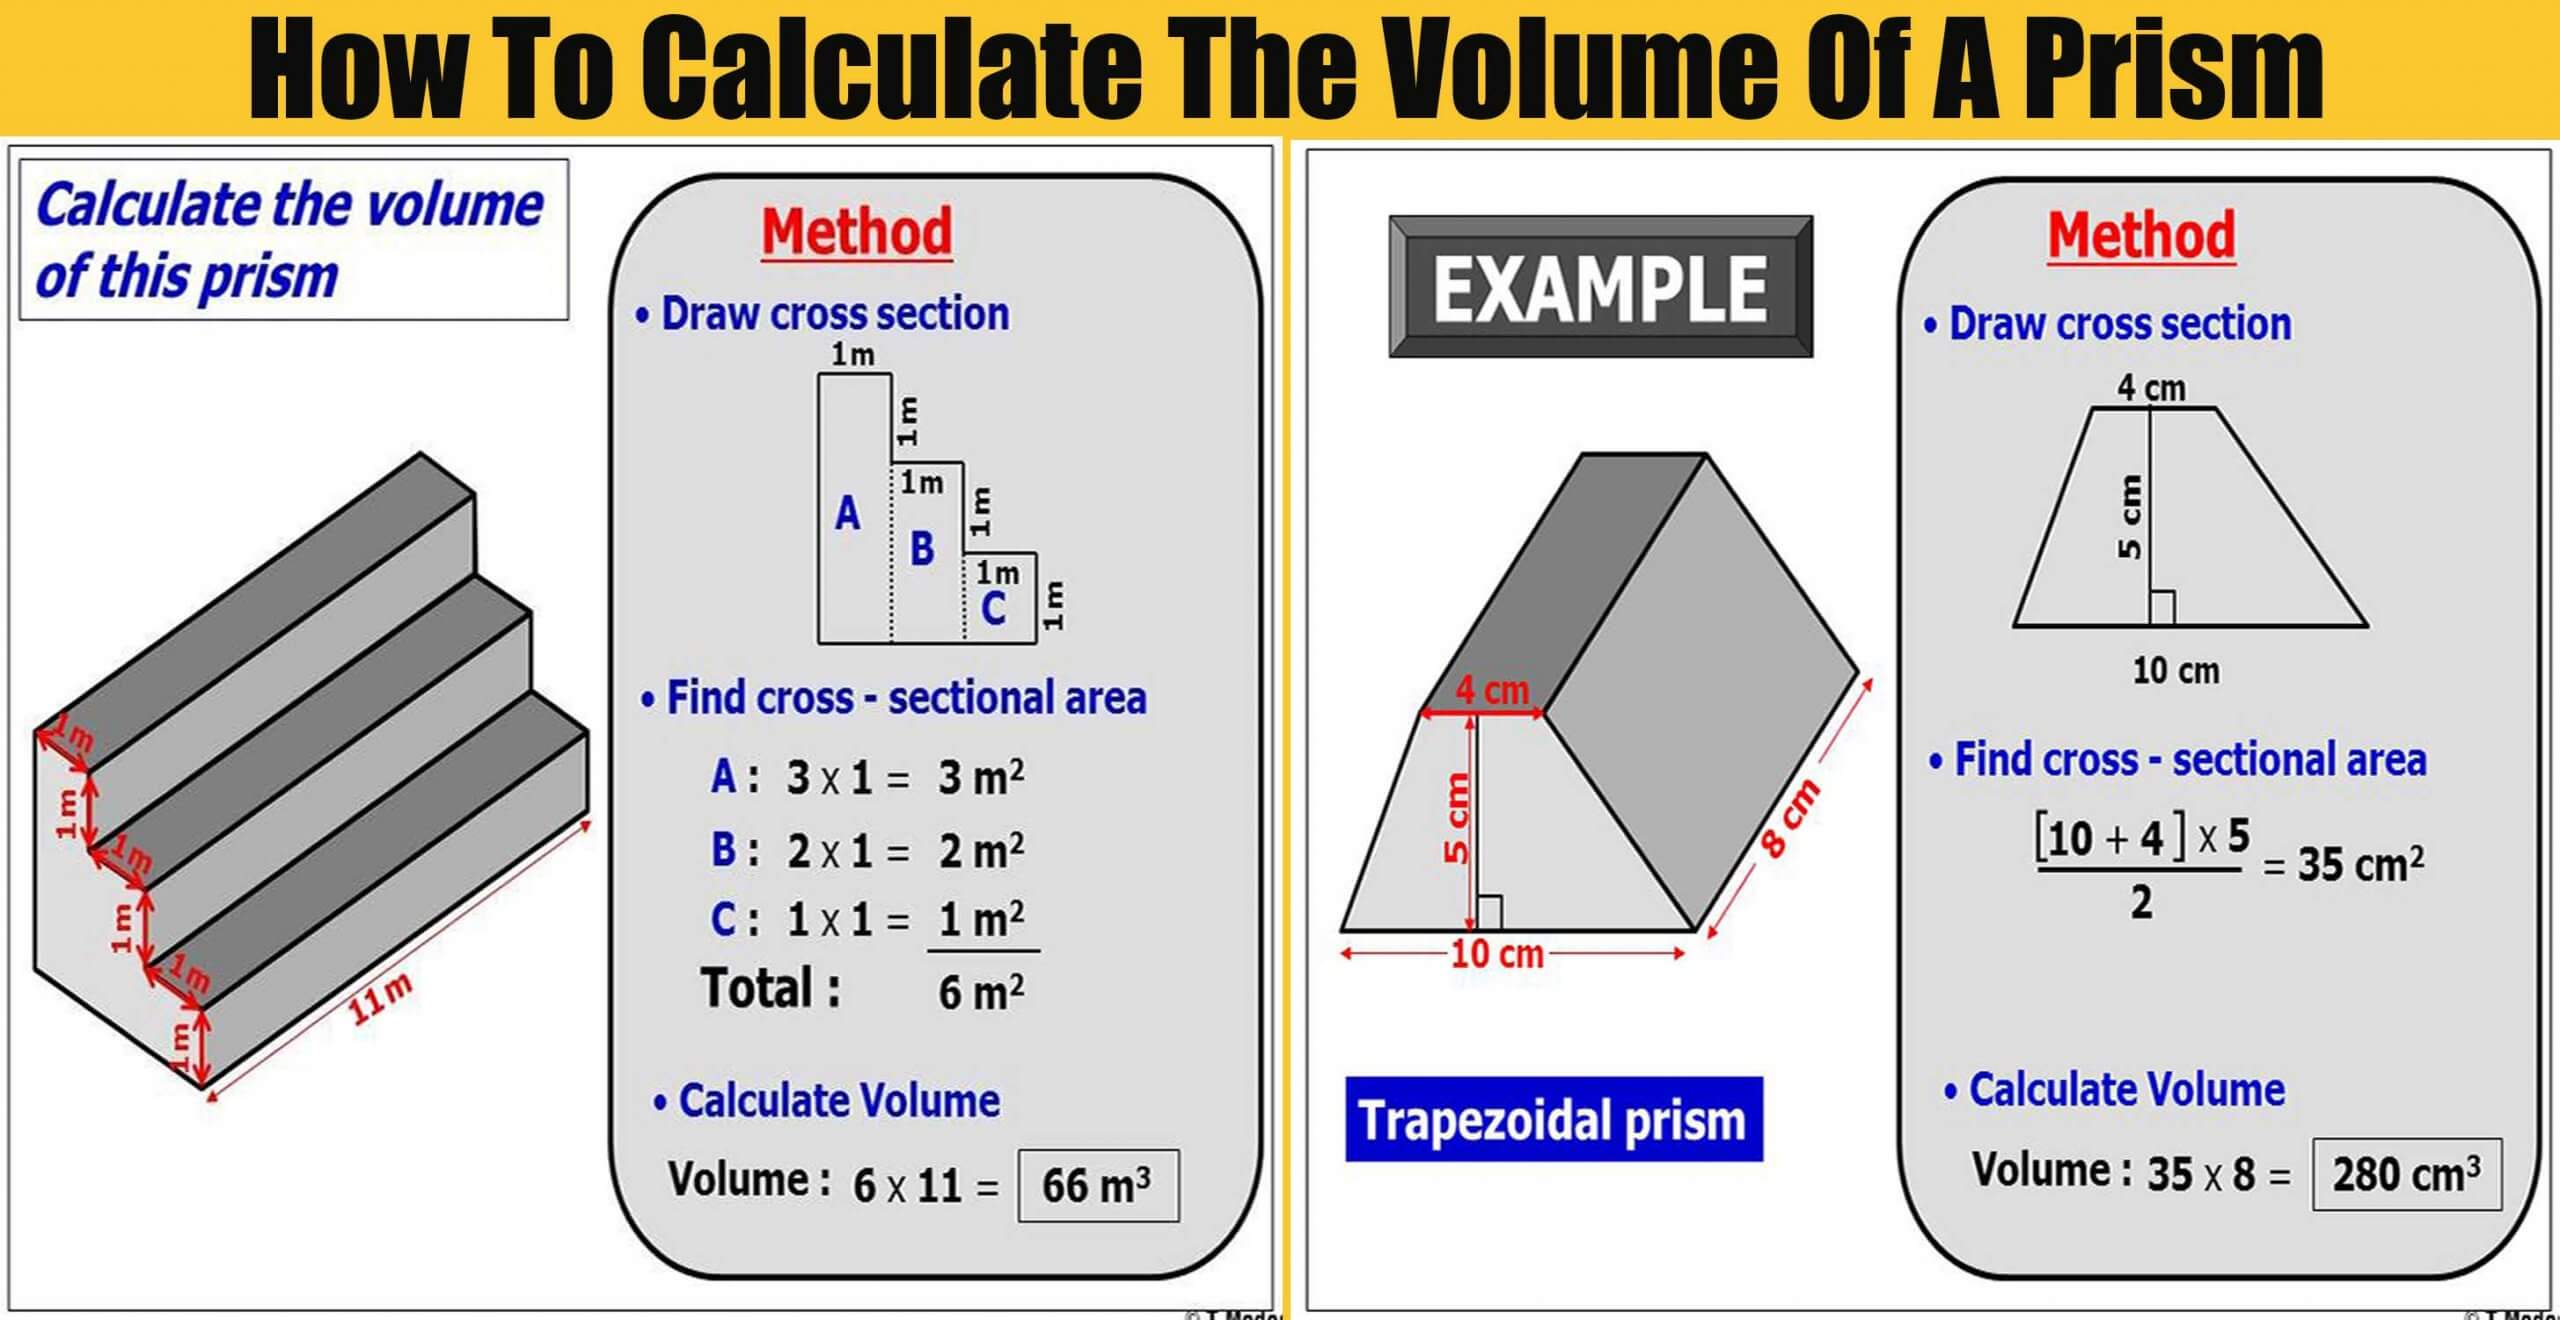 How To Calculate The Volume Of A Prism